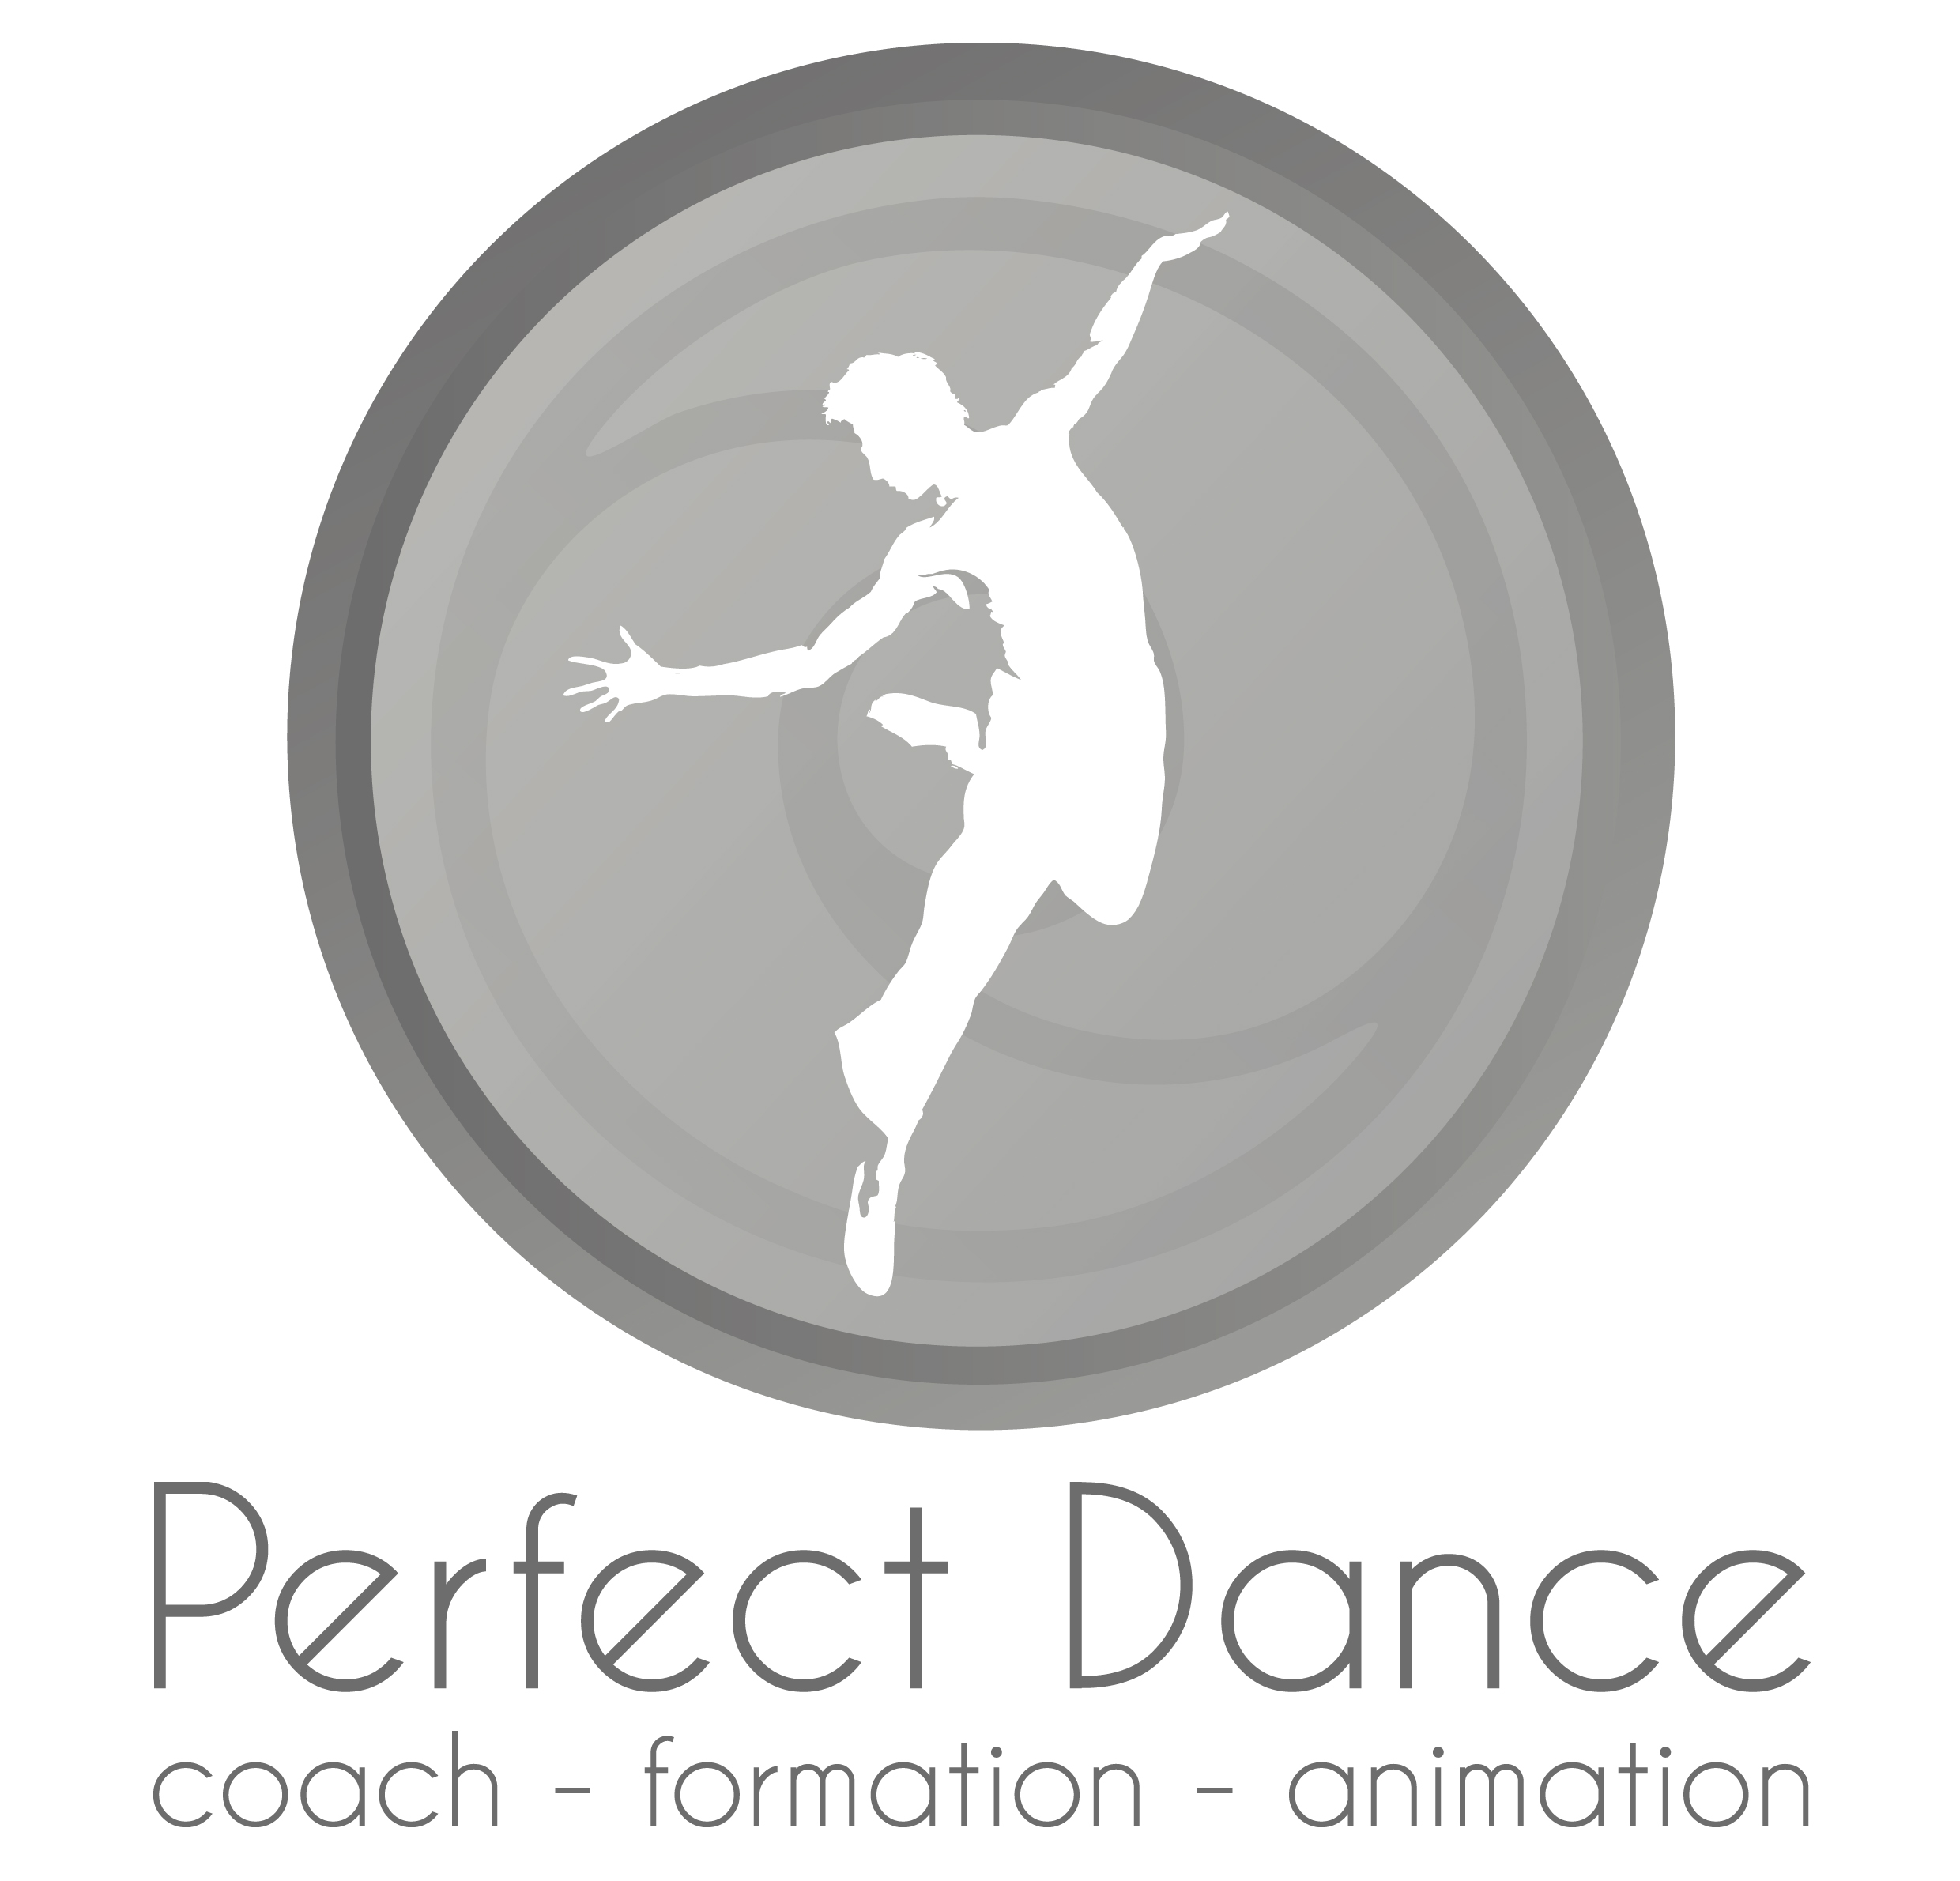 logo perfect dance